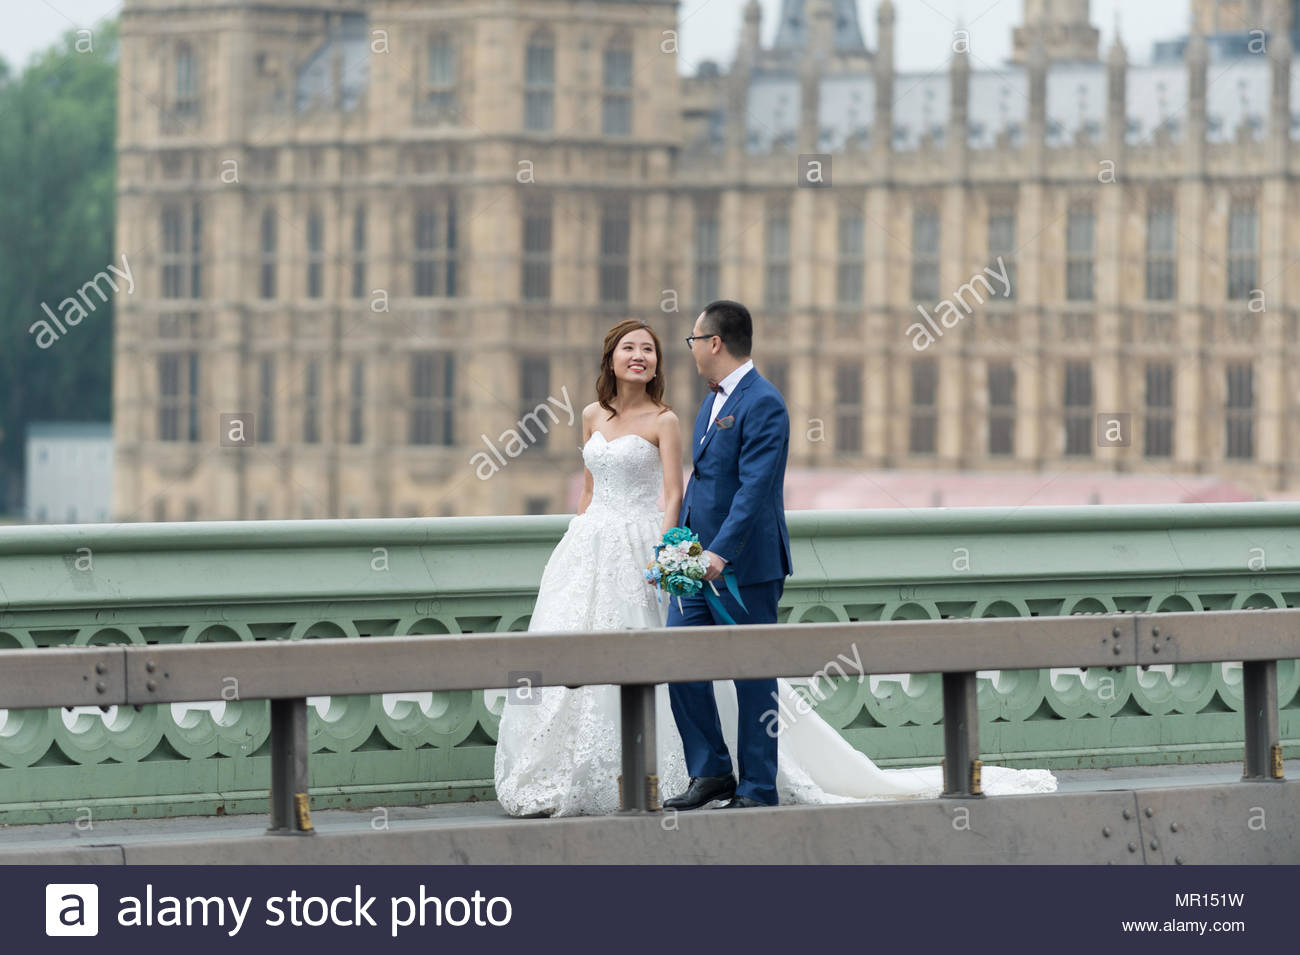 London, UK. 25th May 2018. Asian wedding location photography in Westminster. Credit: Guy Corbishley/Alamy Live News - Stock Image